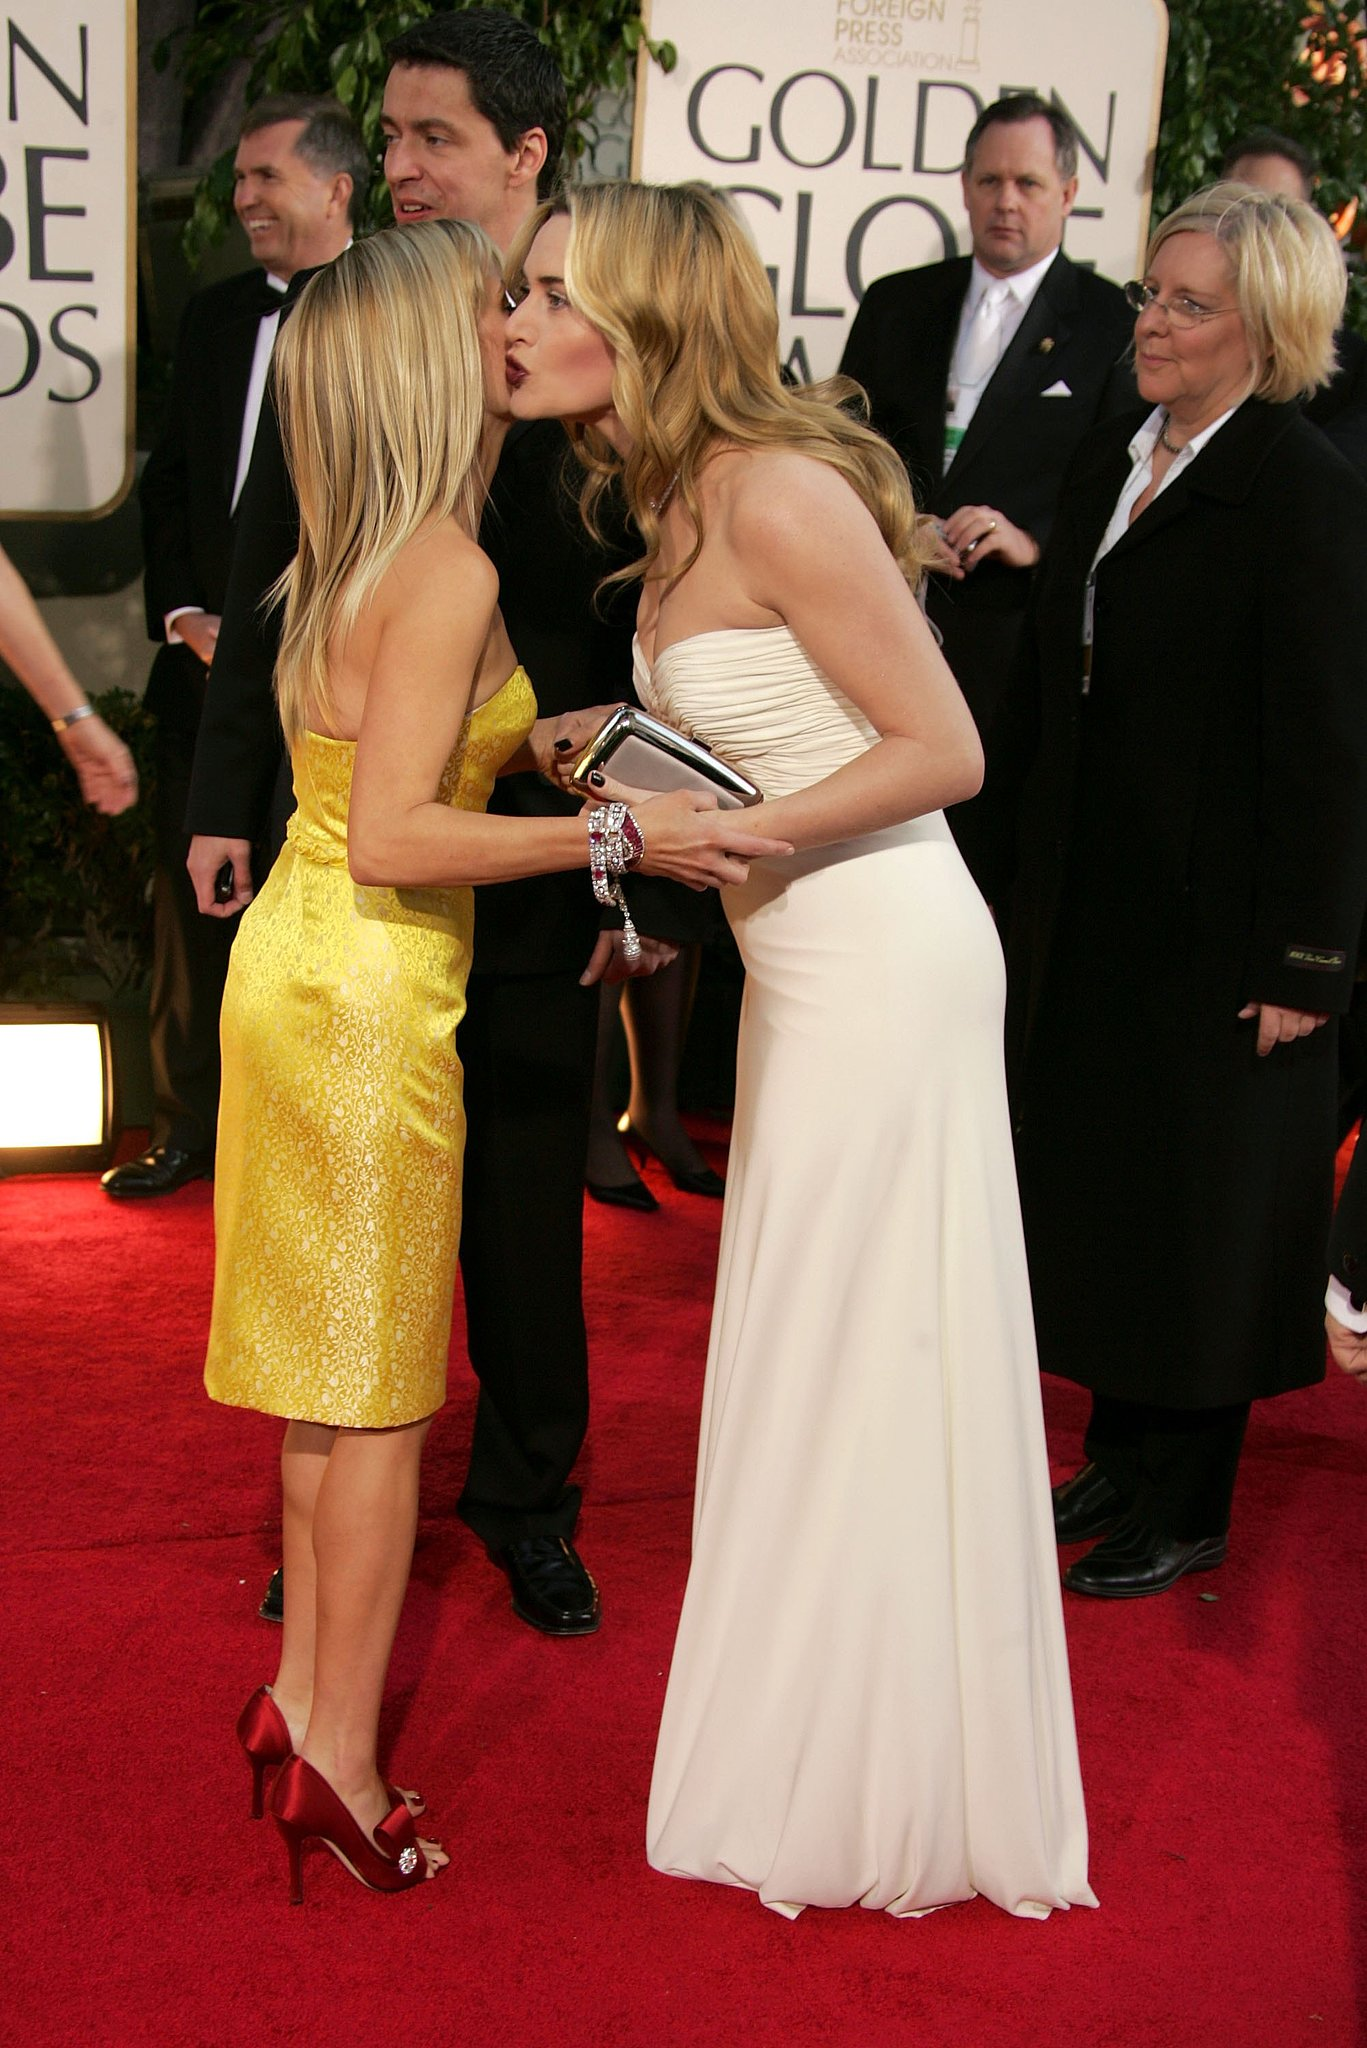 Reese Witherspoon met Kate Winslet in 2007, and the